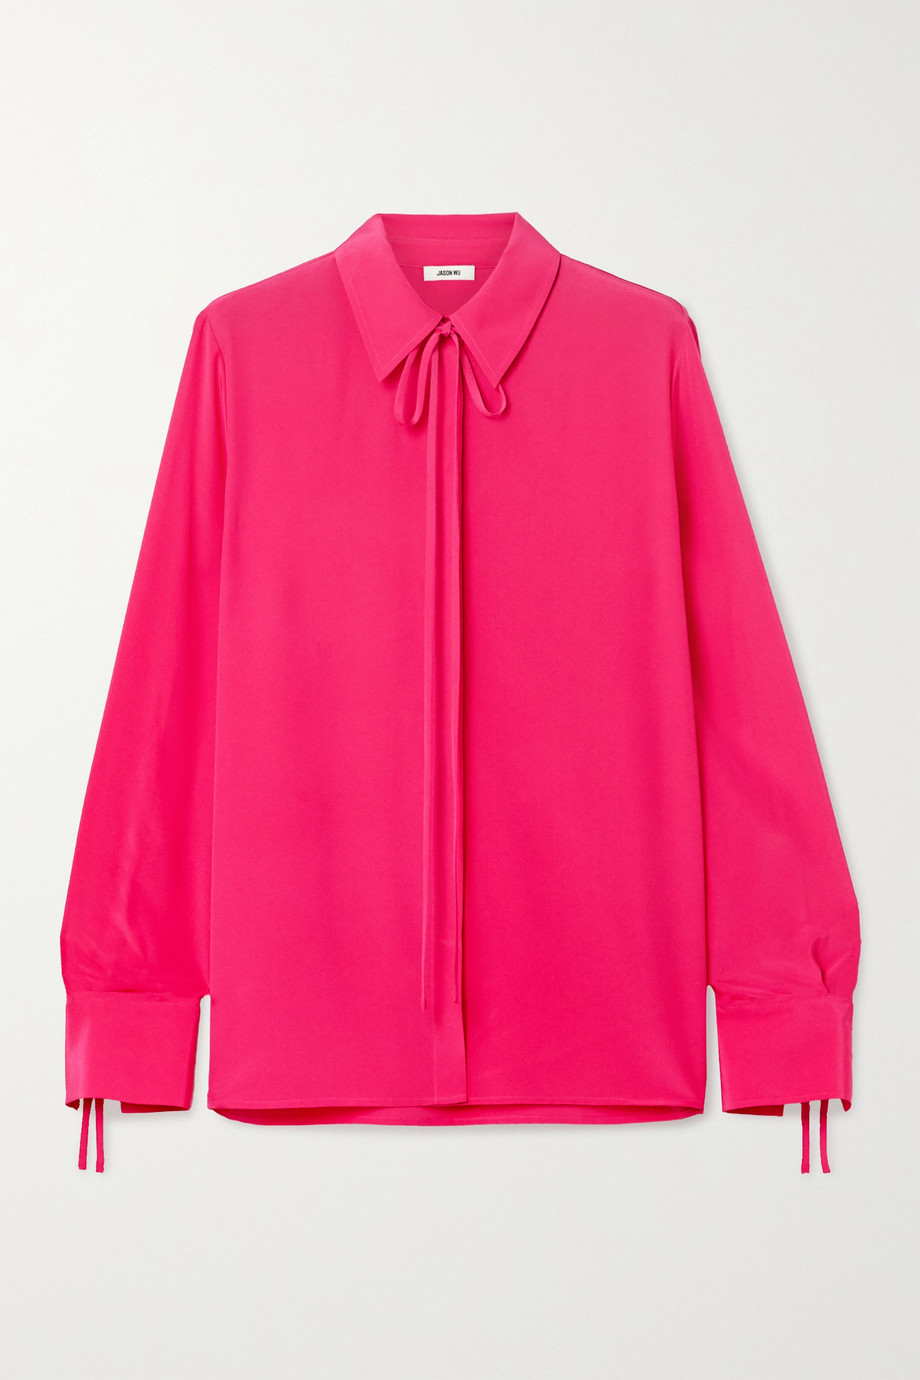 Jason Wu Tie-neck silk crepe de chine blouse